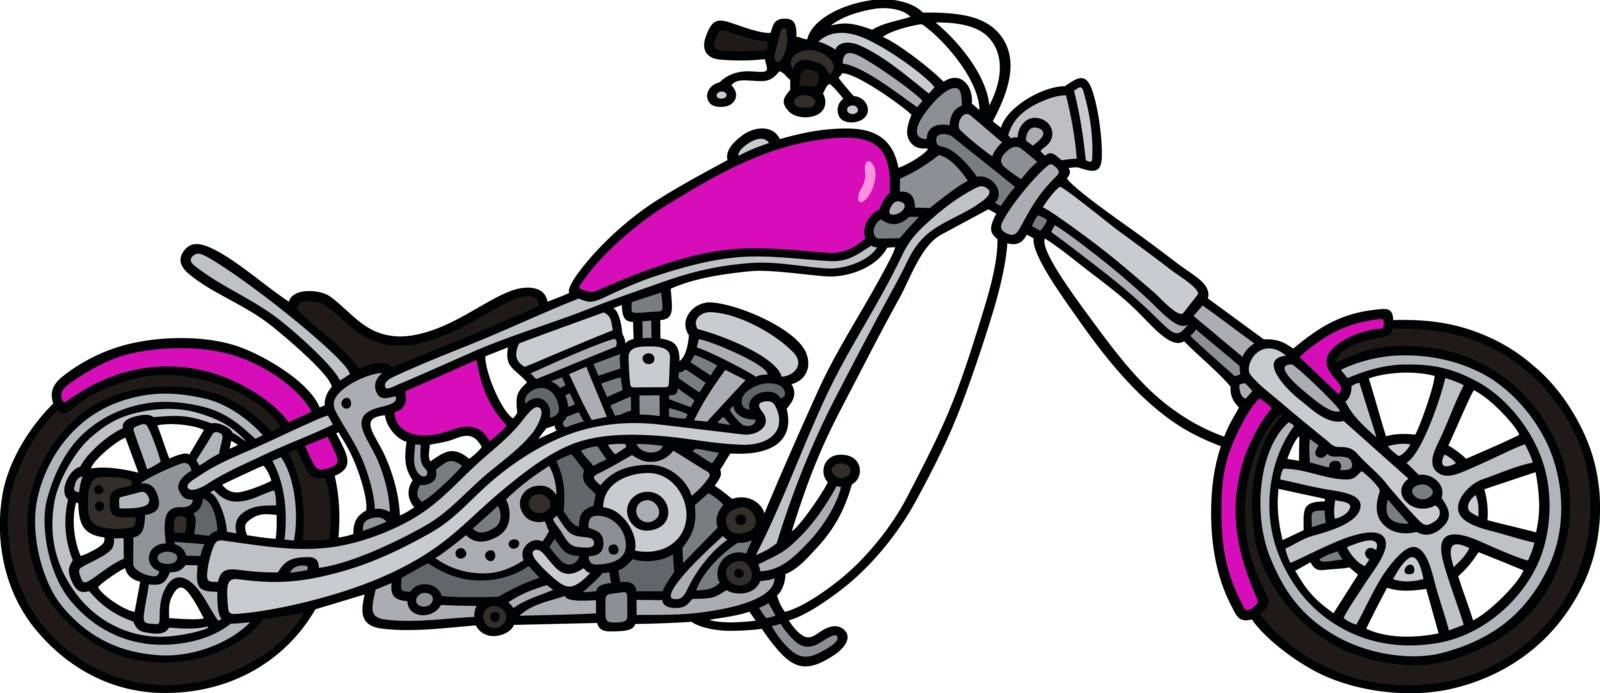 Hand drawing of a violet chopper - not a real model